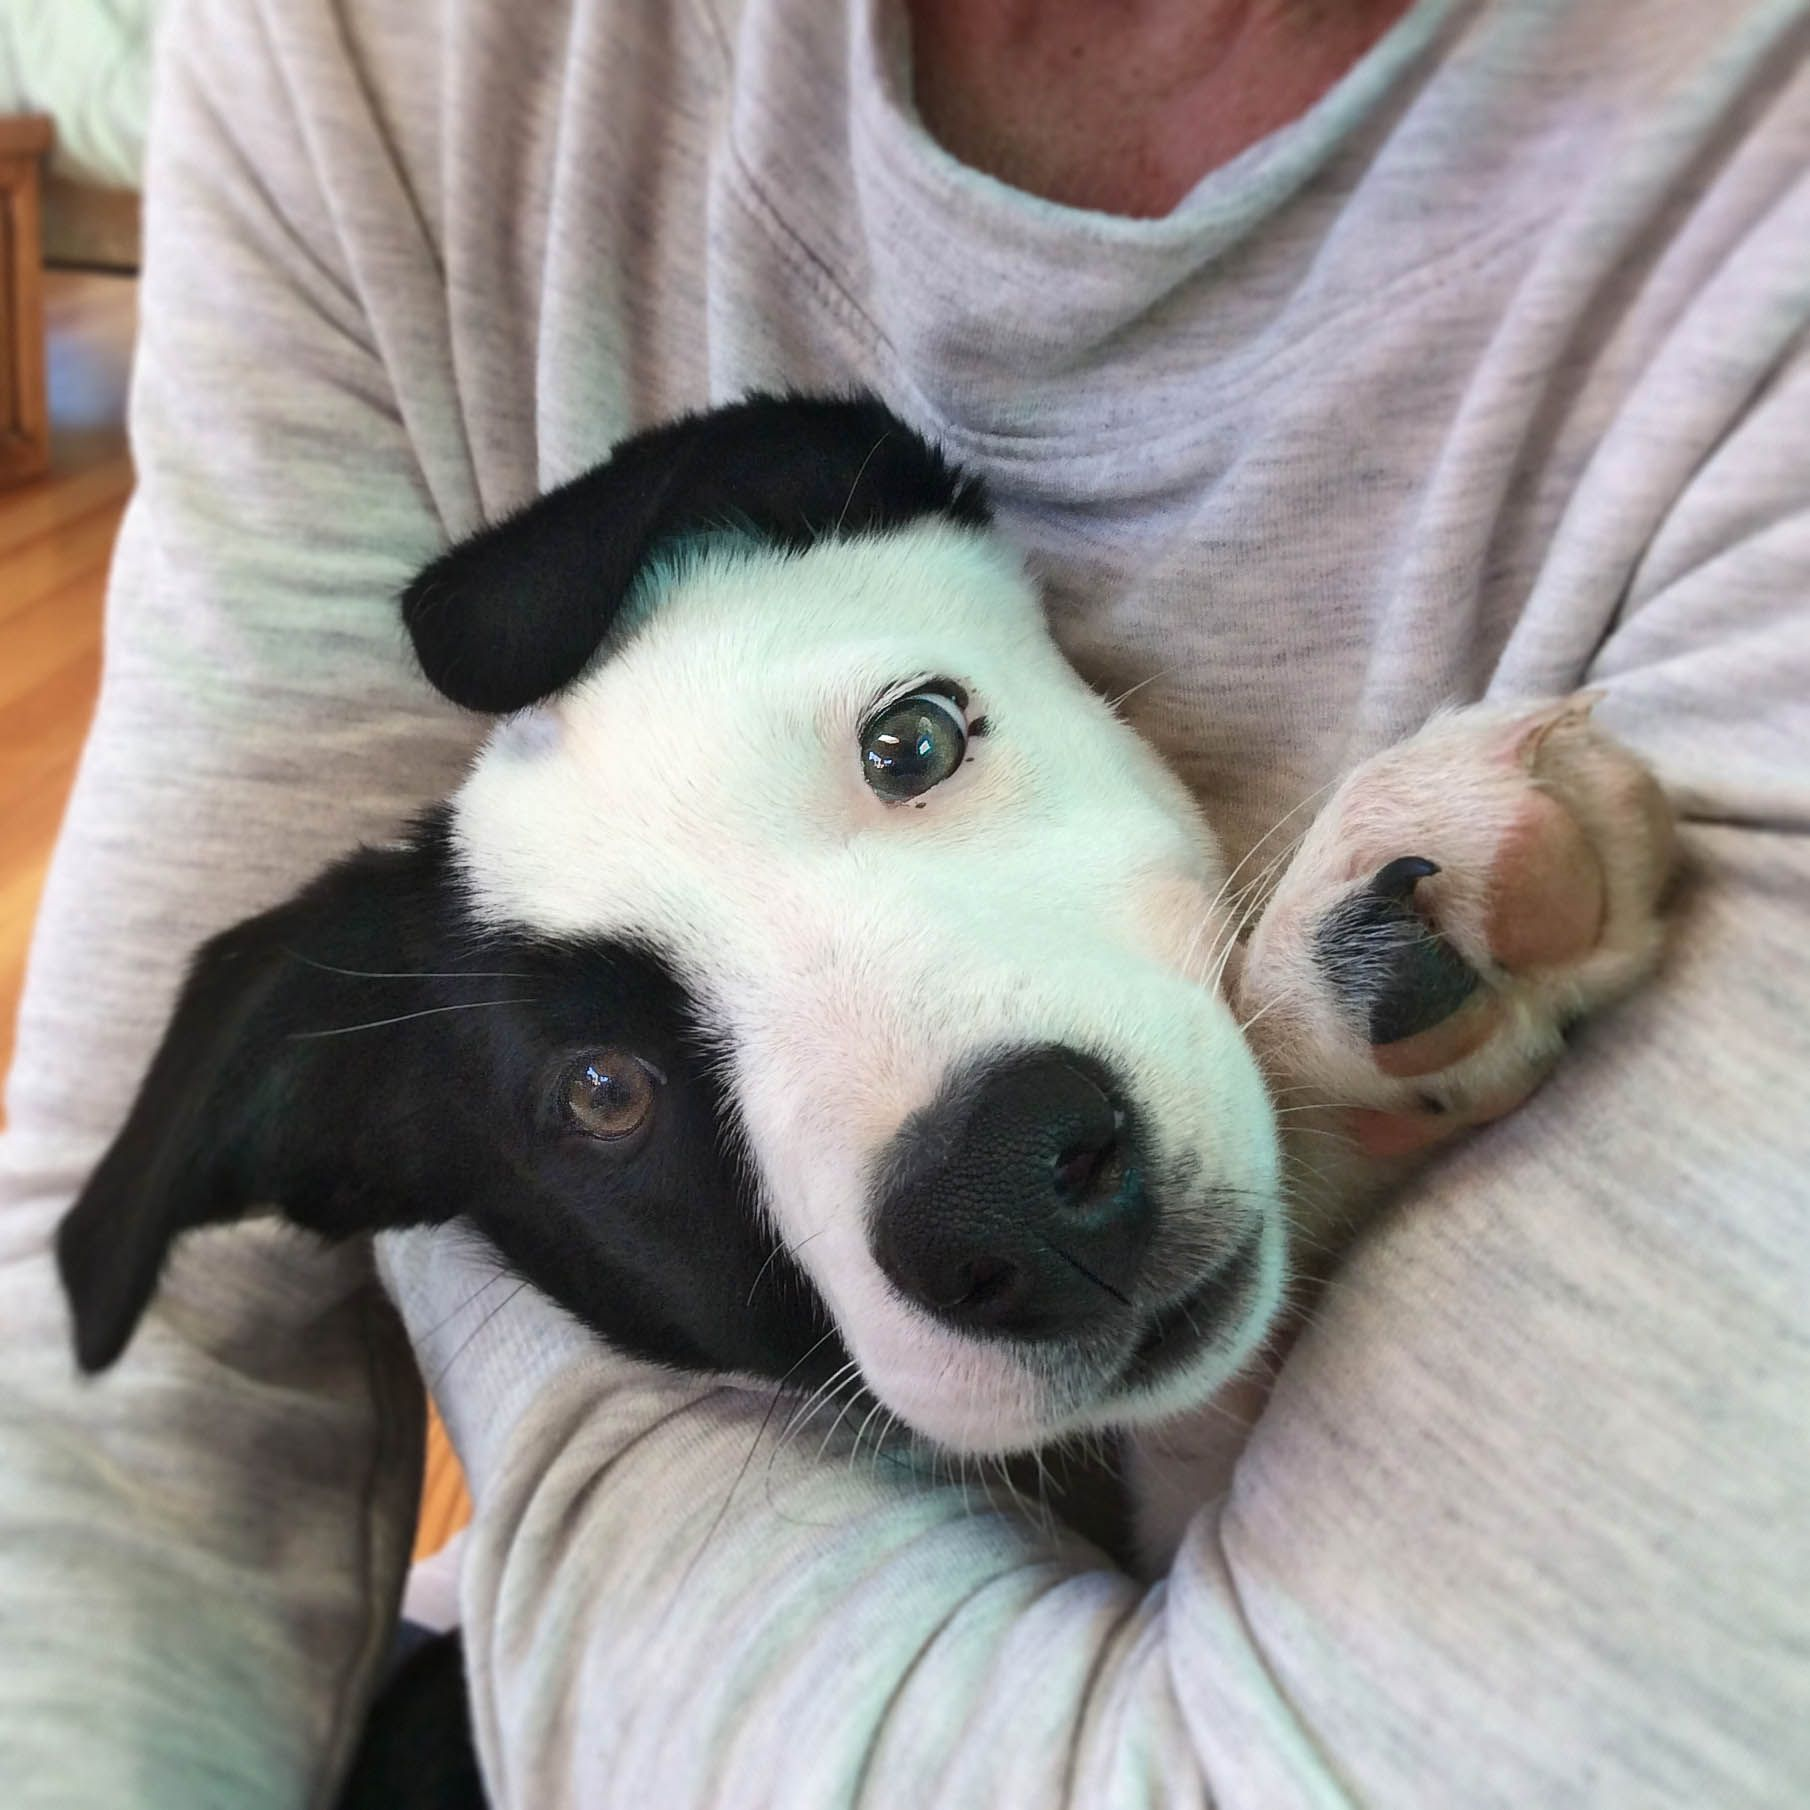 Chaia Http Www Garcinmcnabcollies Com Mcnab Dog Cute Dogs Breeds Dog Breeds